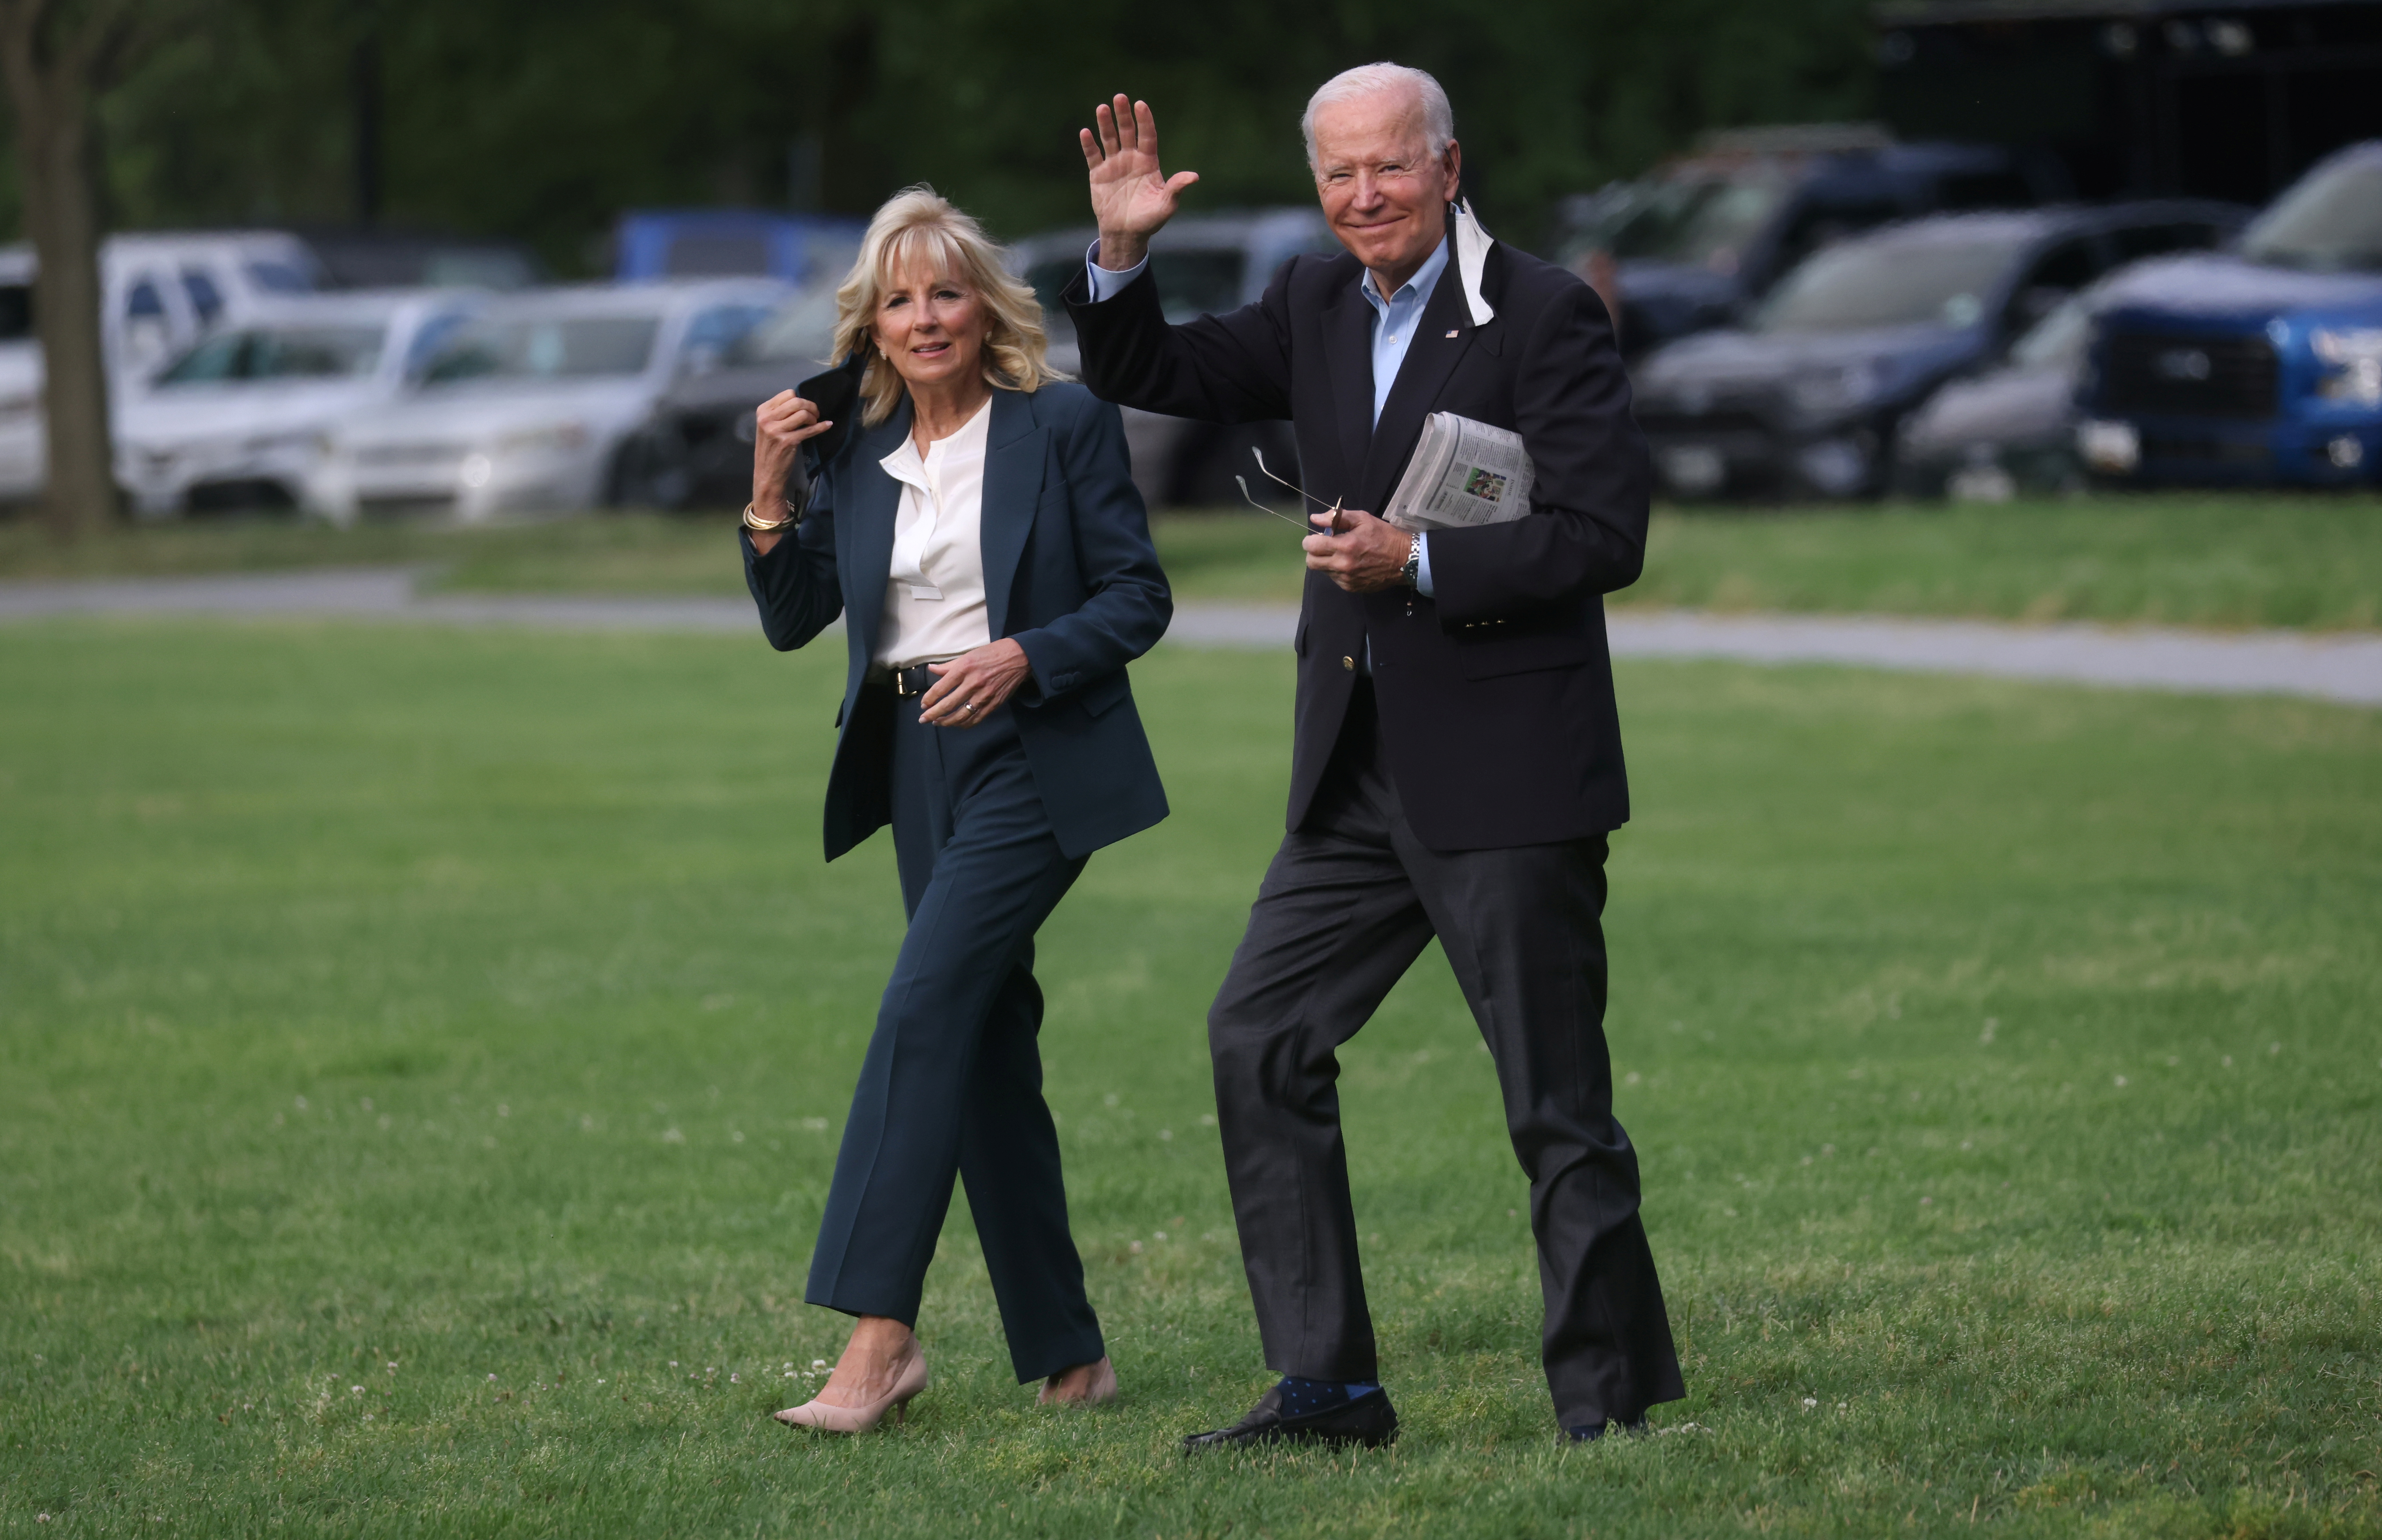 U.S. President Joe Biden and first lady Jill Biden walk to board Marine One for travel to the G7 Summit in the UK from the Ellipse at the White House in Washington, U.S., June 9, 2021. REUTERS/Leah Millis